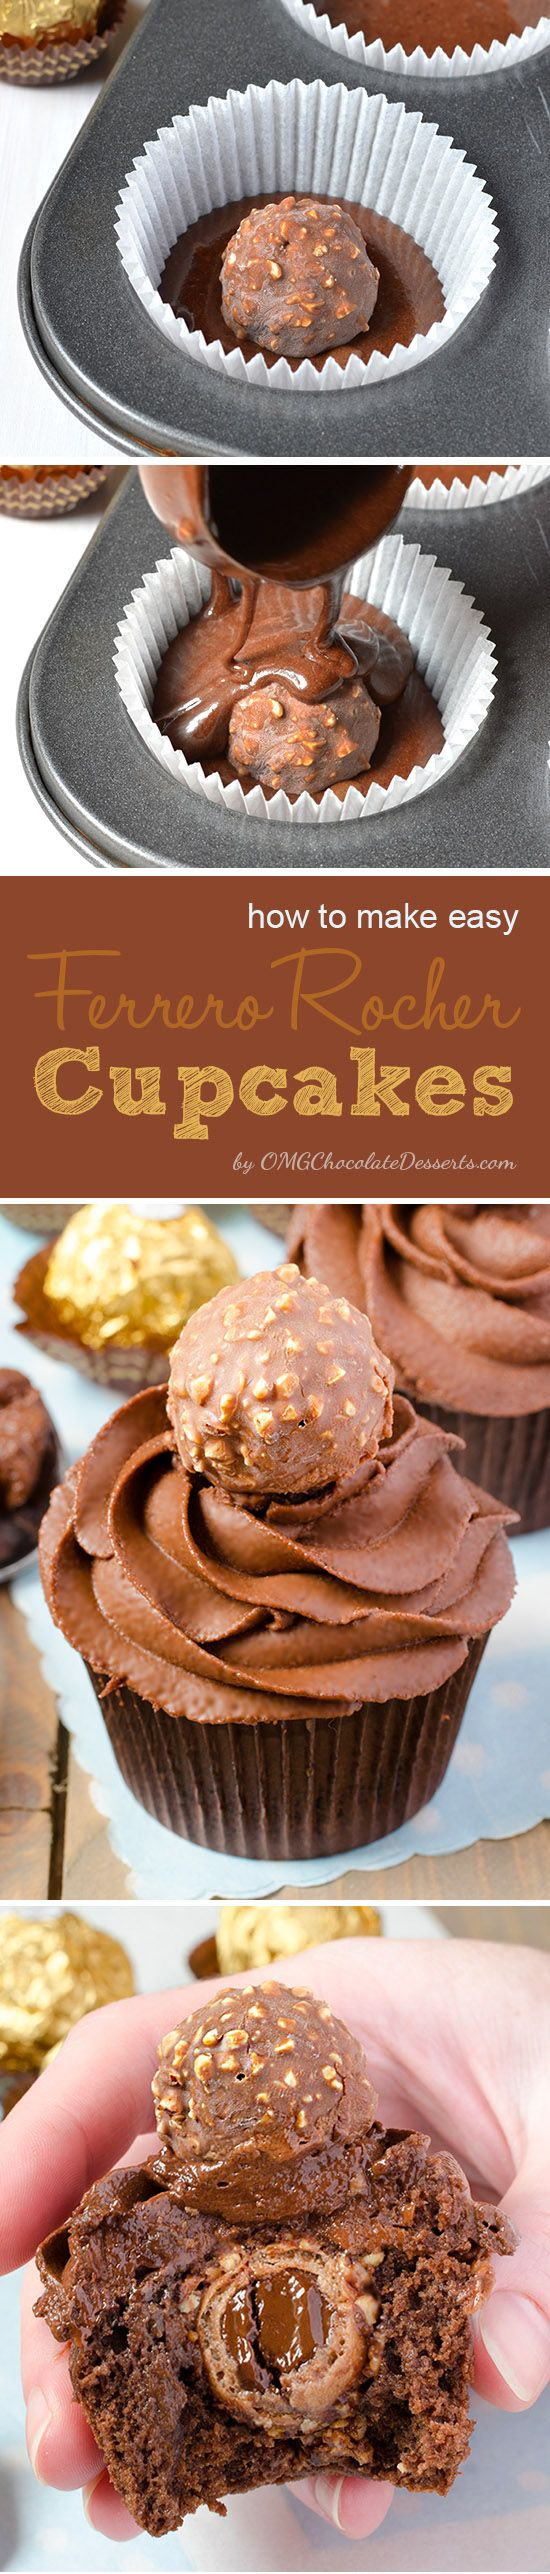 Ferrero Rocher Cupcakes - this is my favorite candy and so I can't wait to try these!